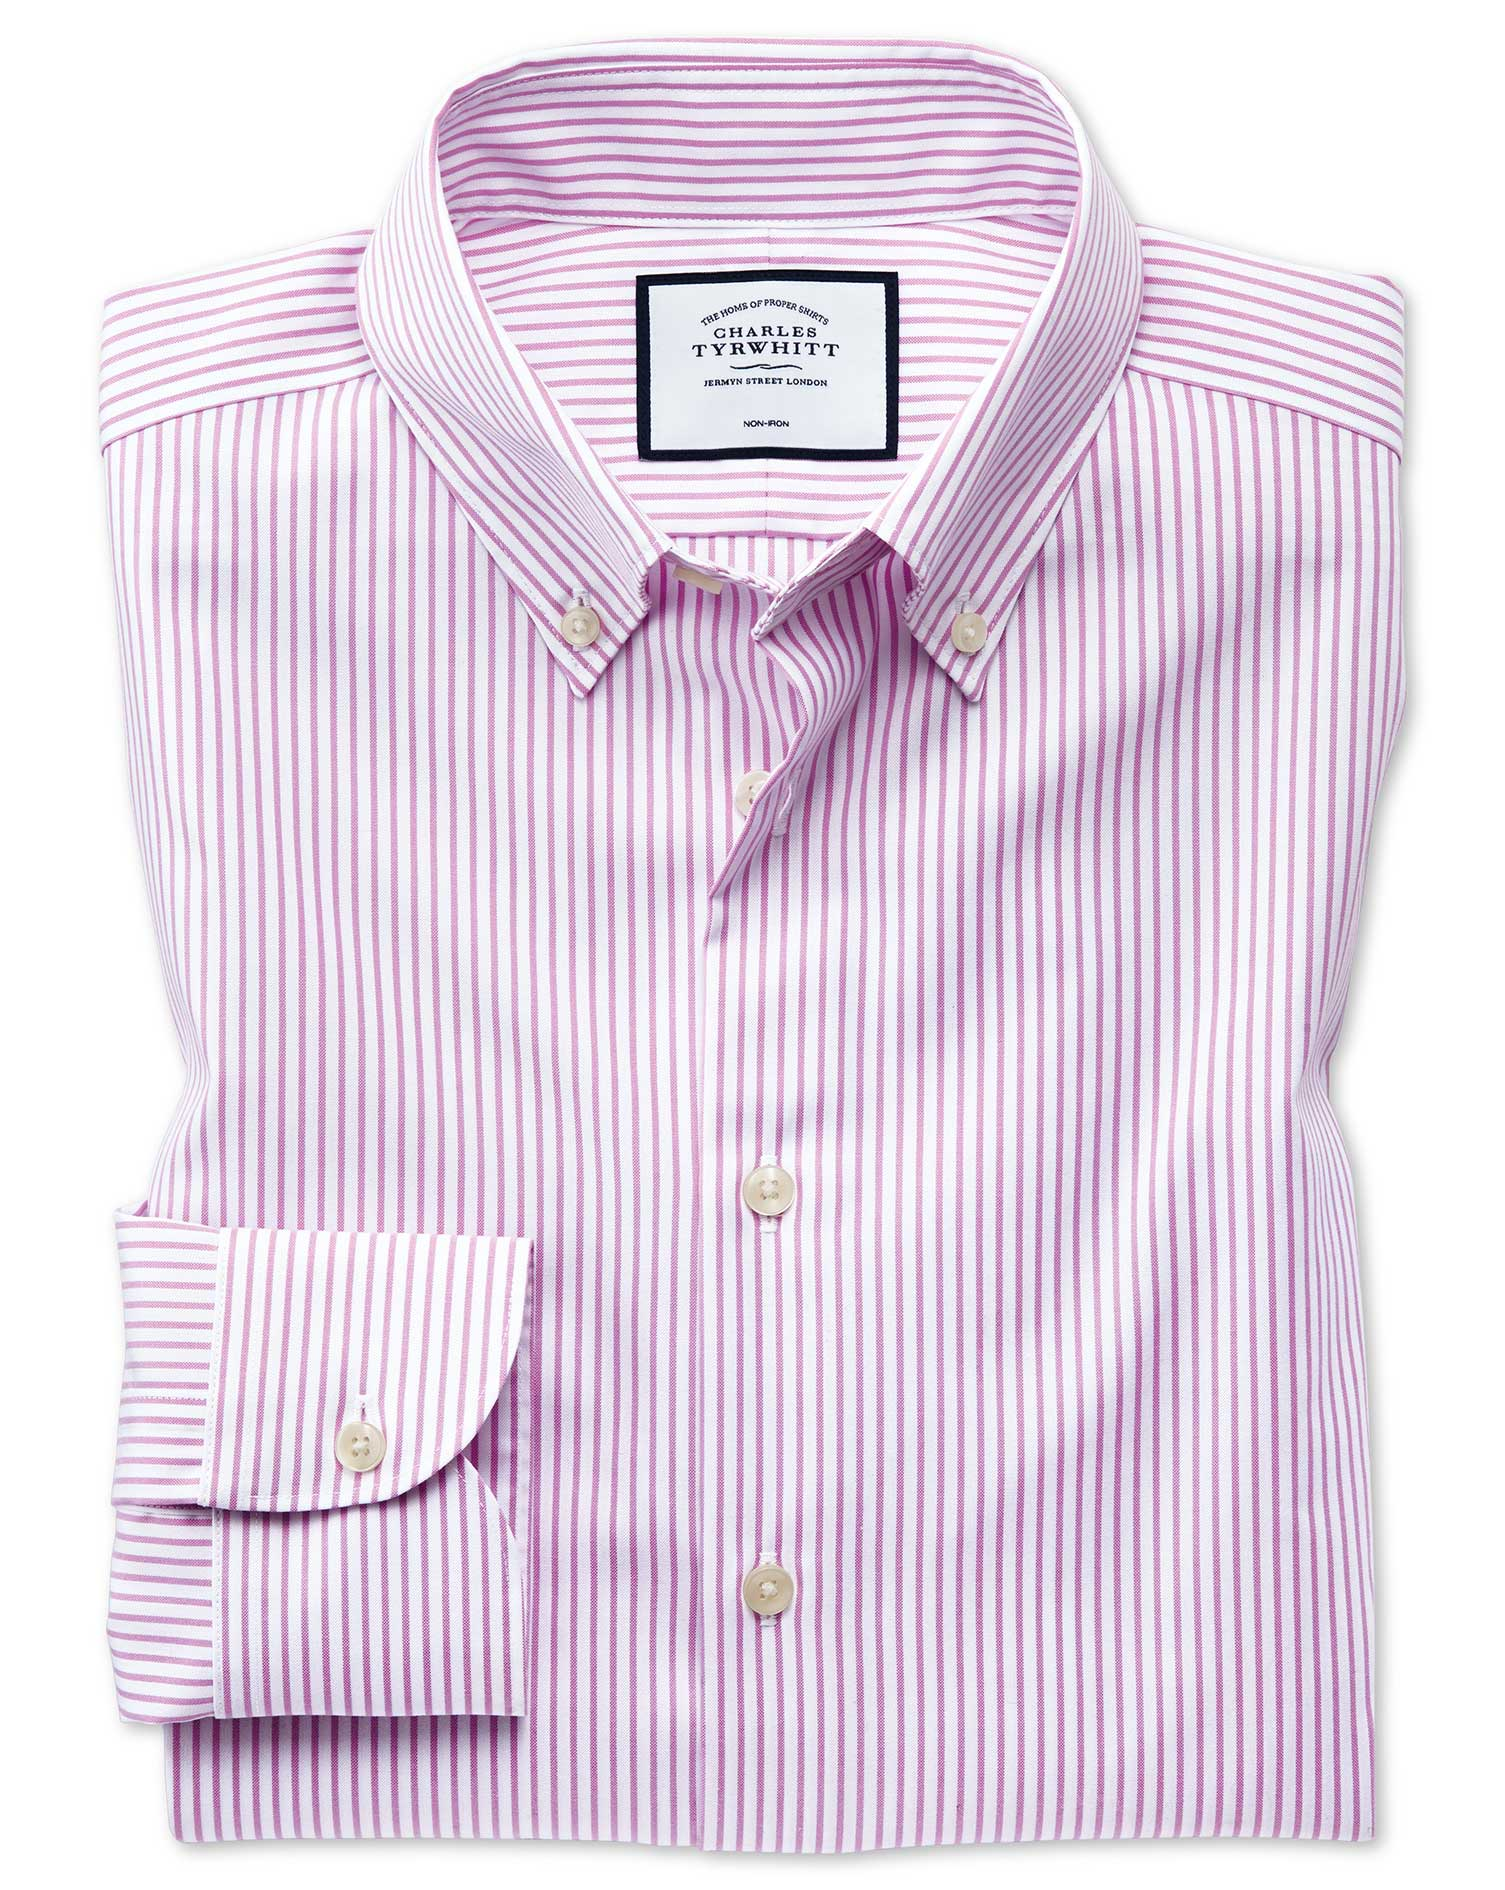 Slim Fit Business Casual Non-Iron Button-Down Pink Stripe Cotton Formal Shirt Single Cuff Size 15.5/